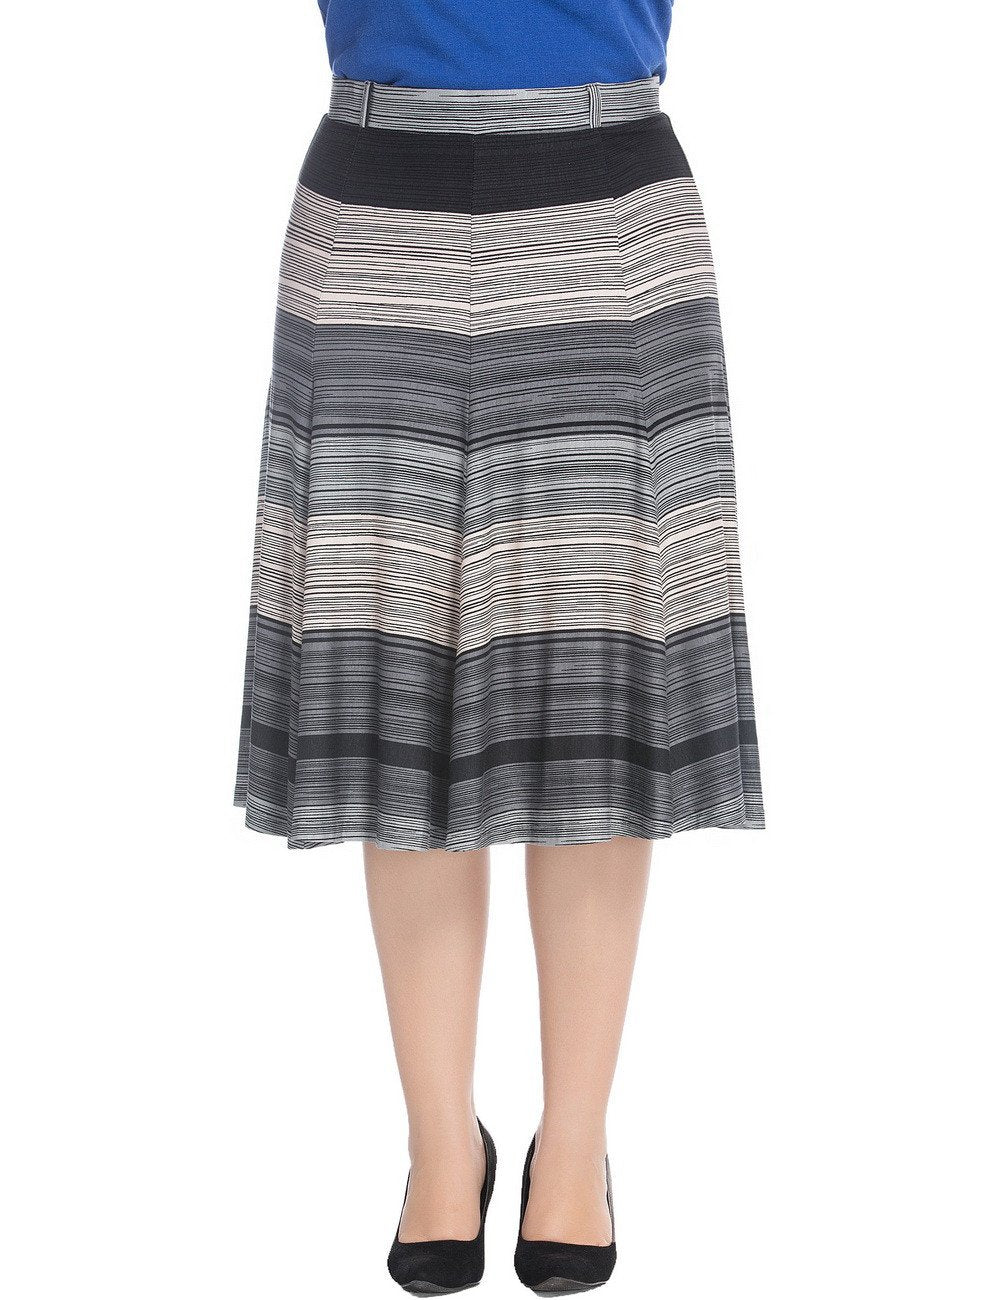 Chicwe Women's Plus Size A-Line Flared Skirt Knee-Long with Stretch Waistband US16-26